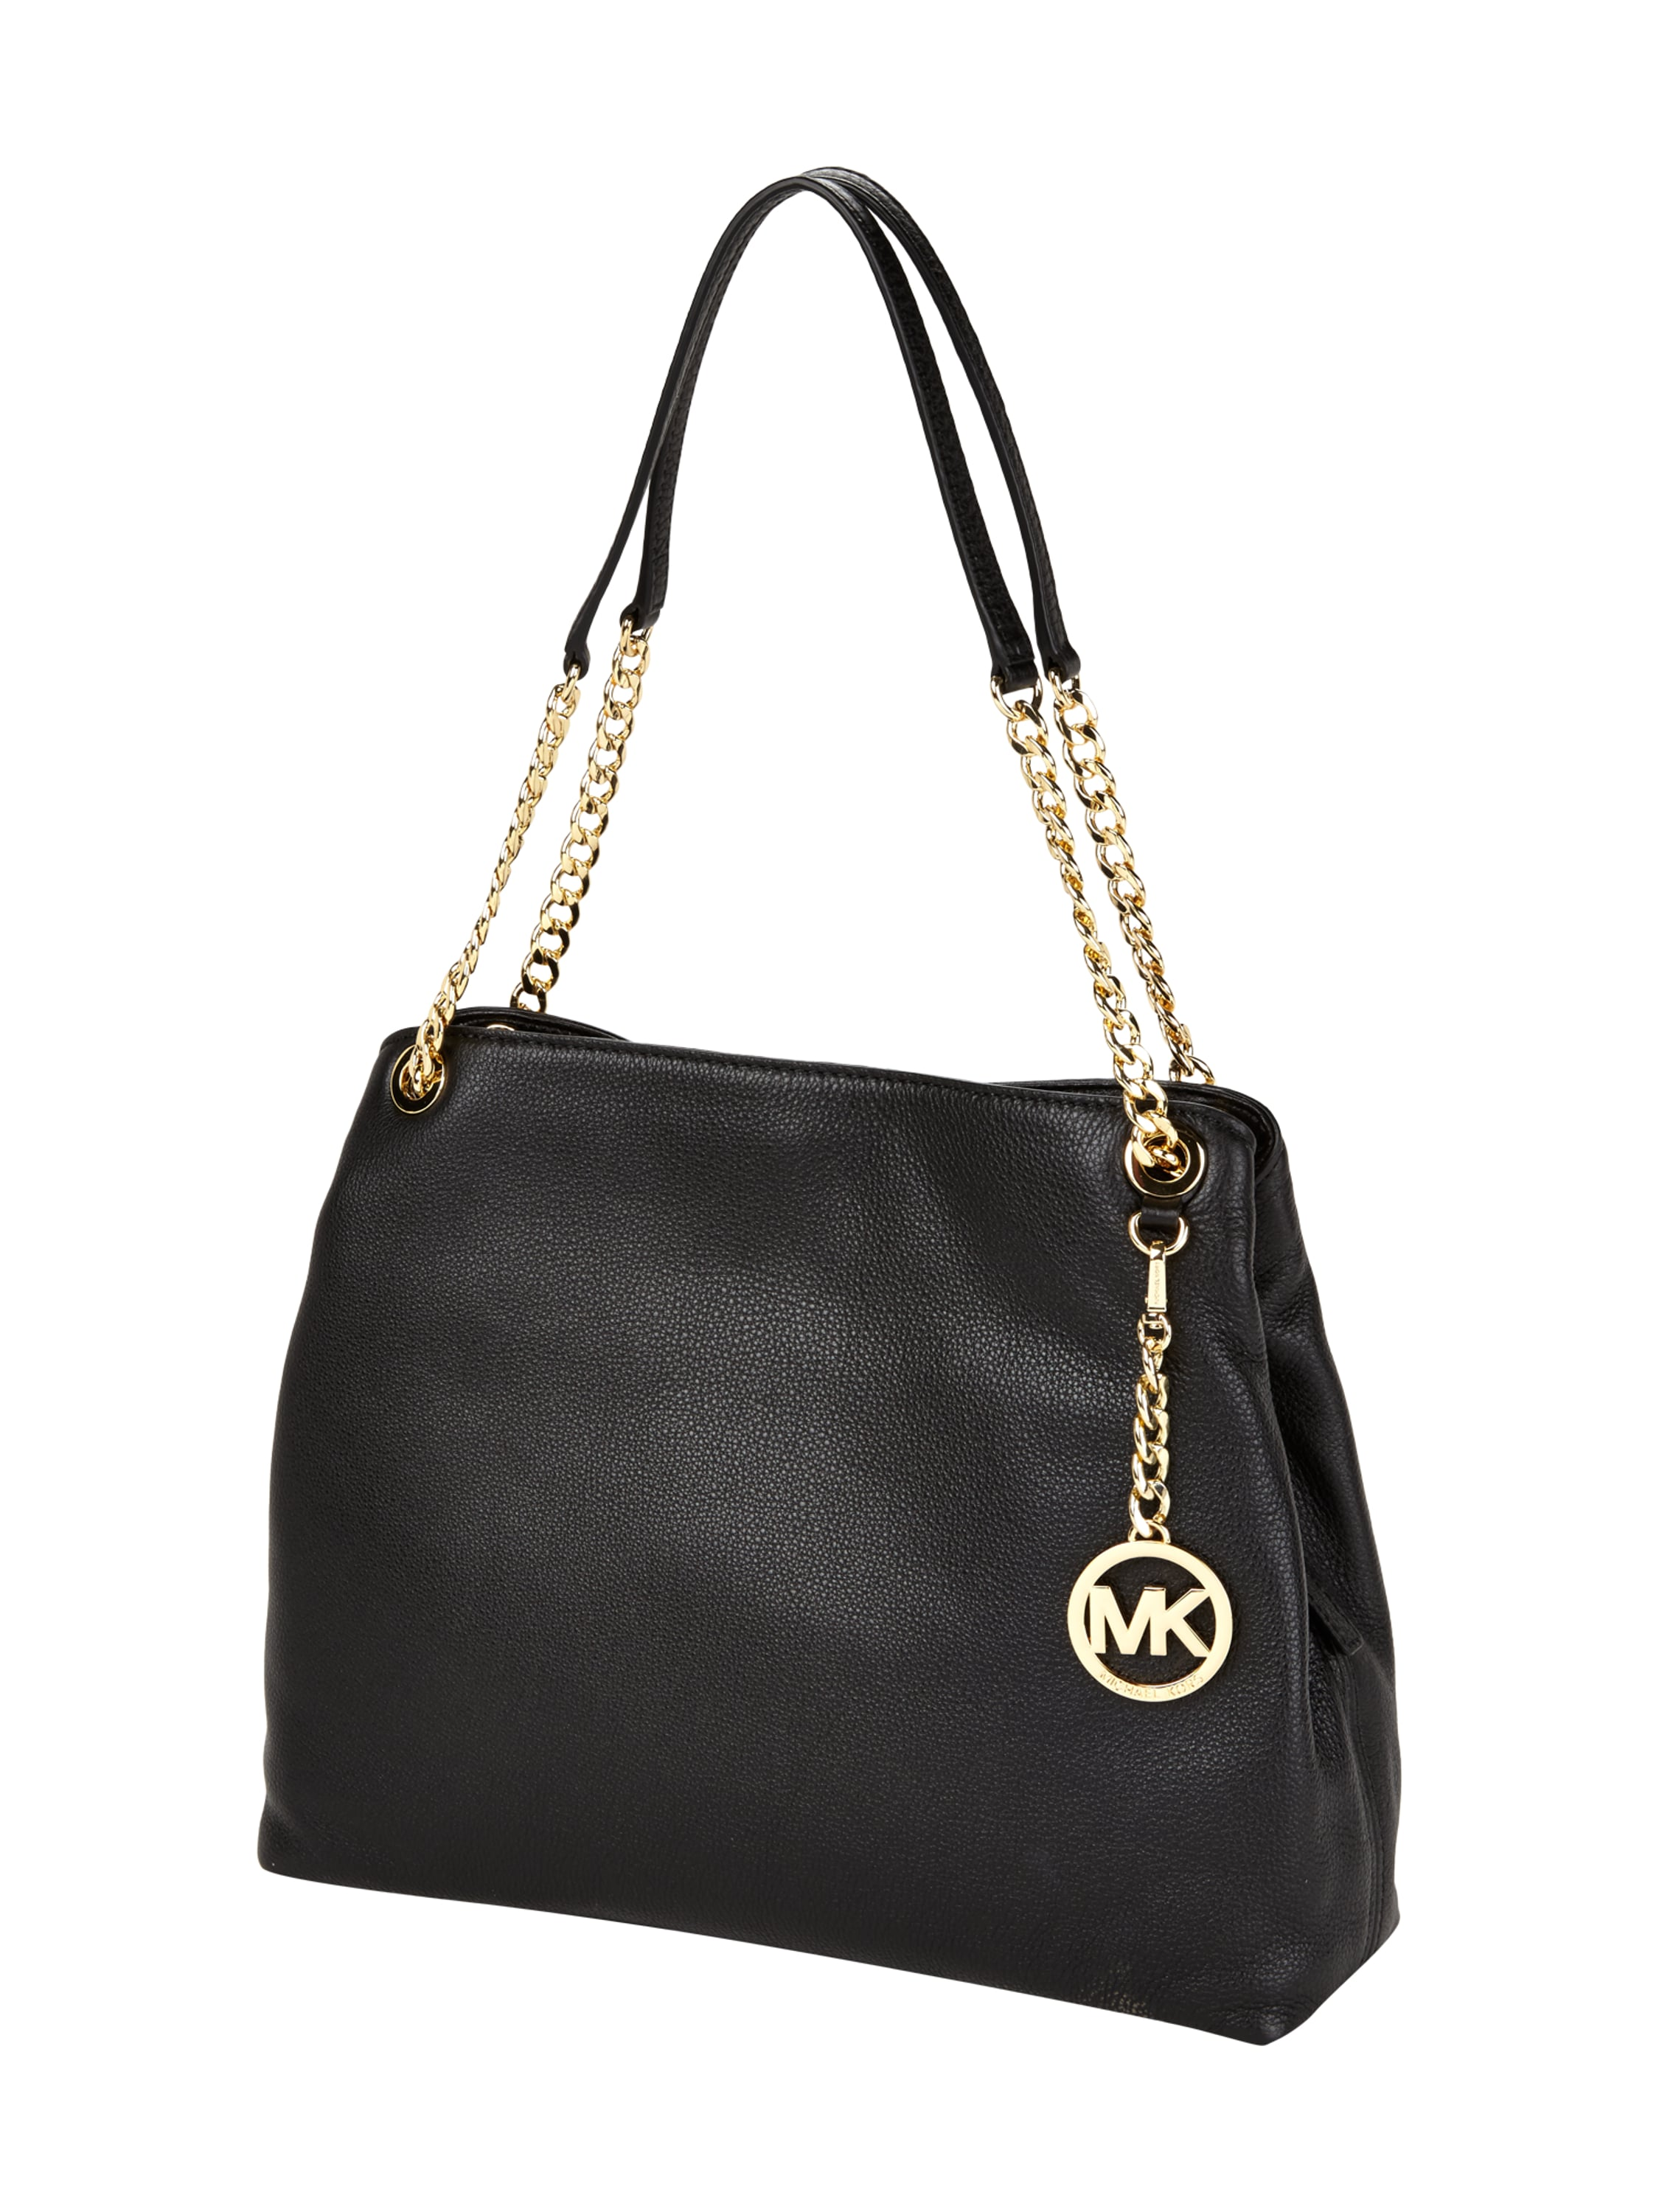 michael michael kors handtasche aus echtem leder mit. Black Bedroom Furniture Sets. Home Design Ideas